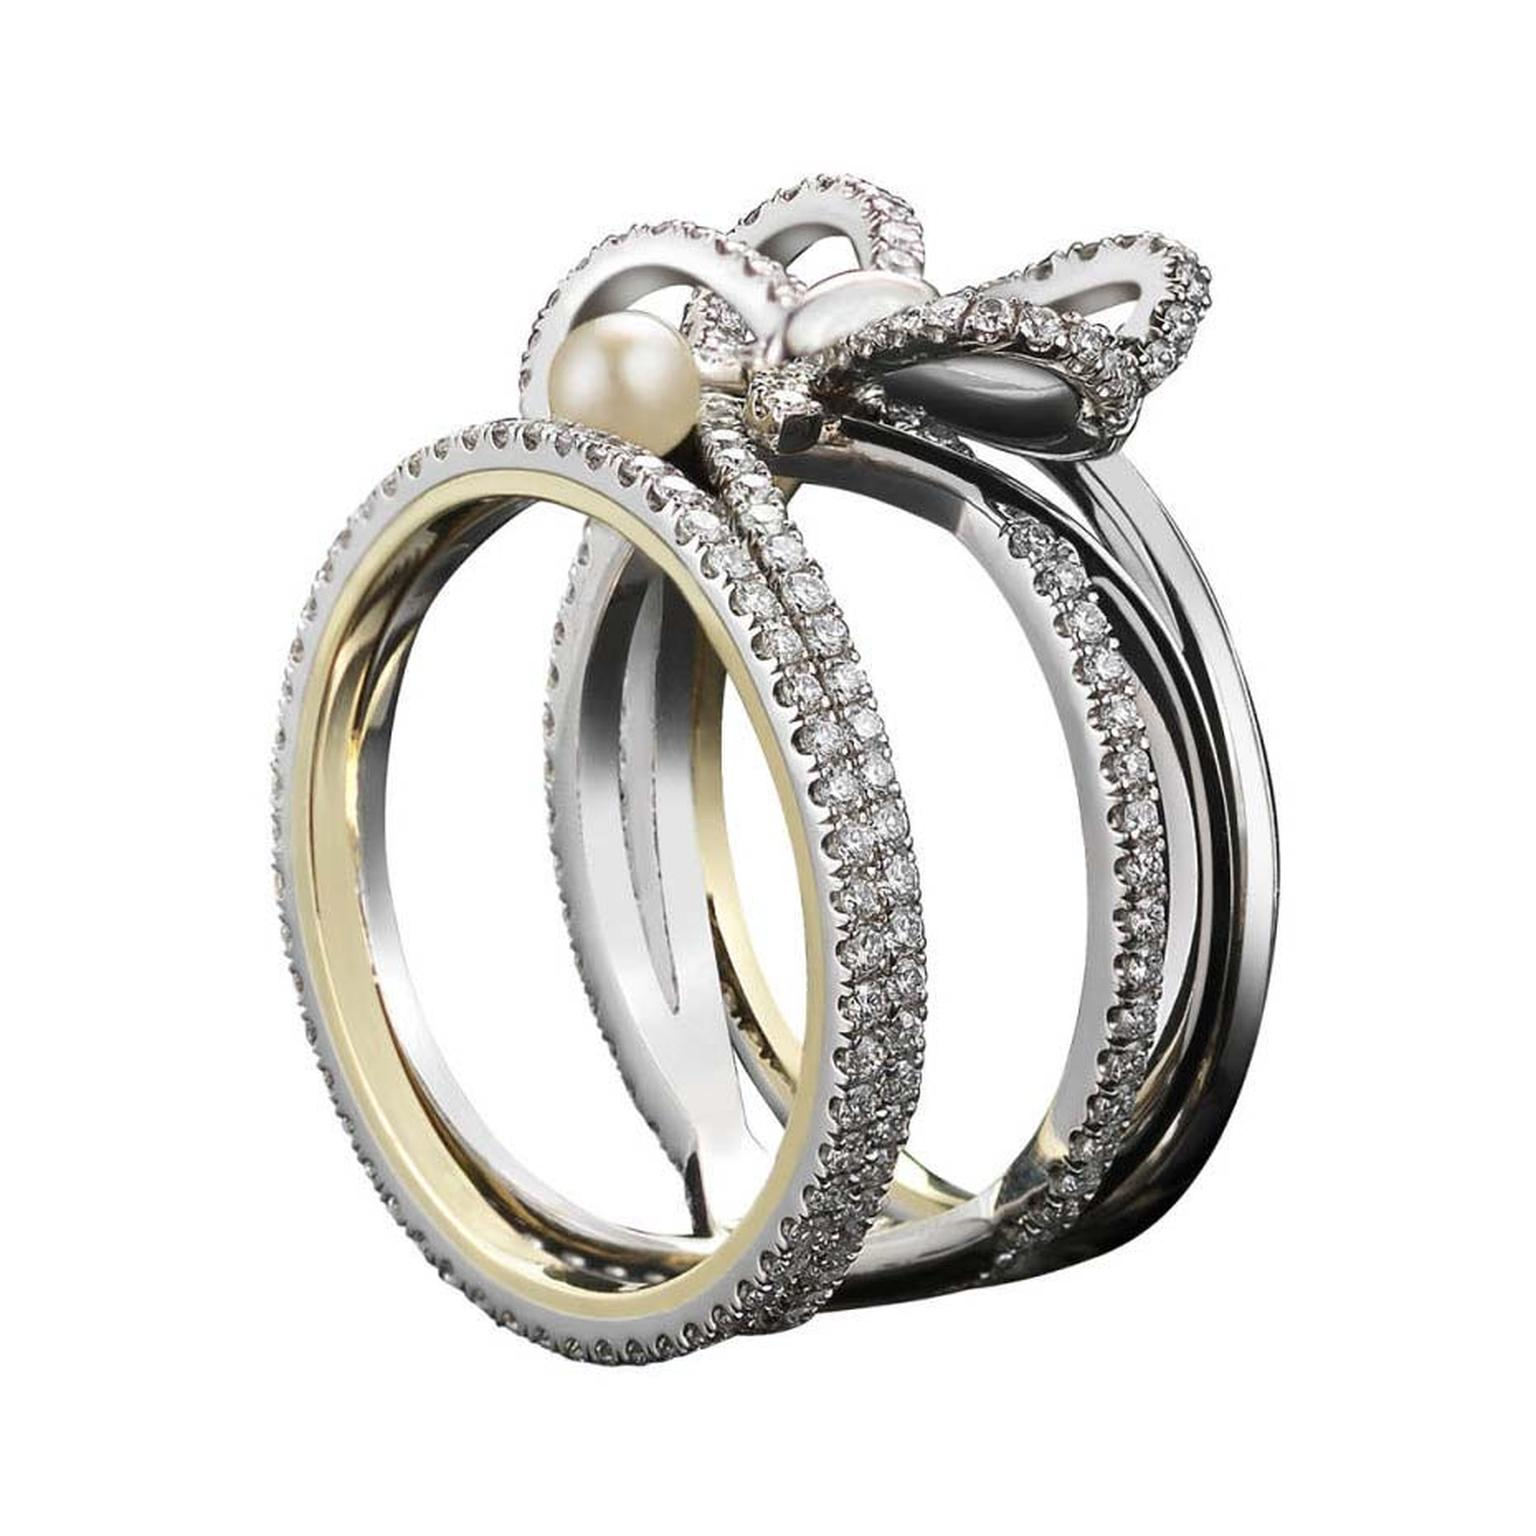 Diamond Bow And Pearl Ring By Alexandra Mor Jewelry With The Designer S Signature 1mm Knife